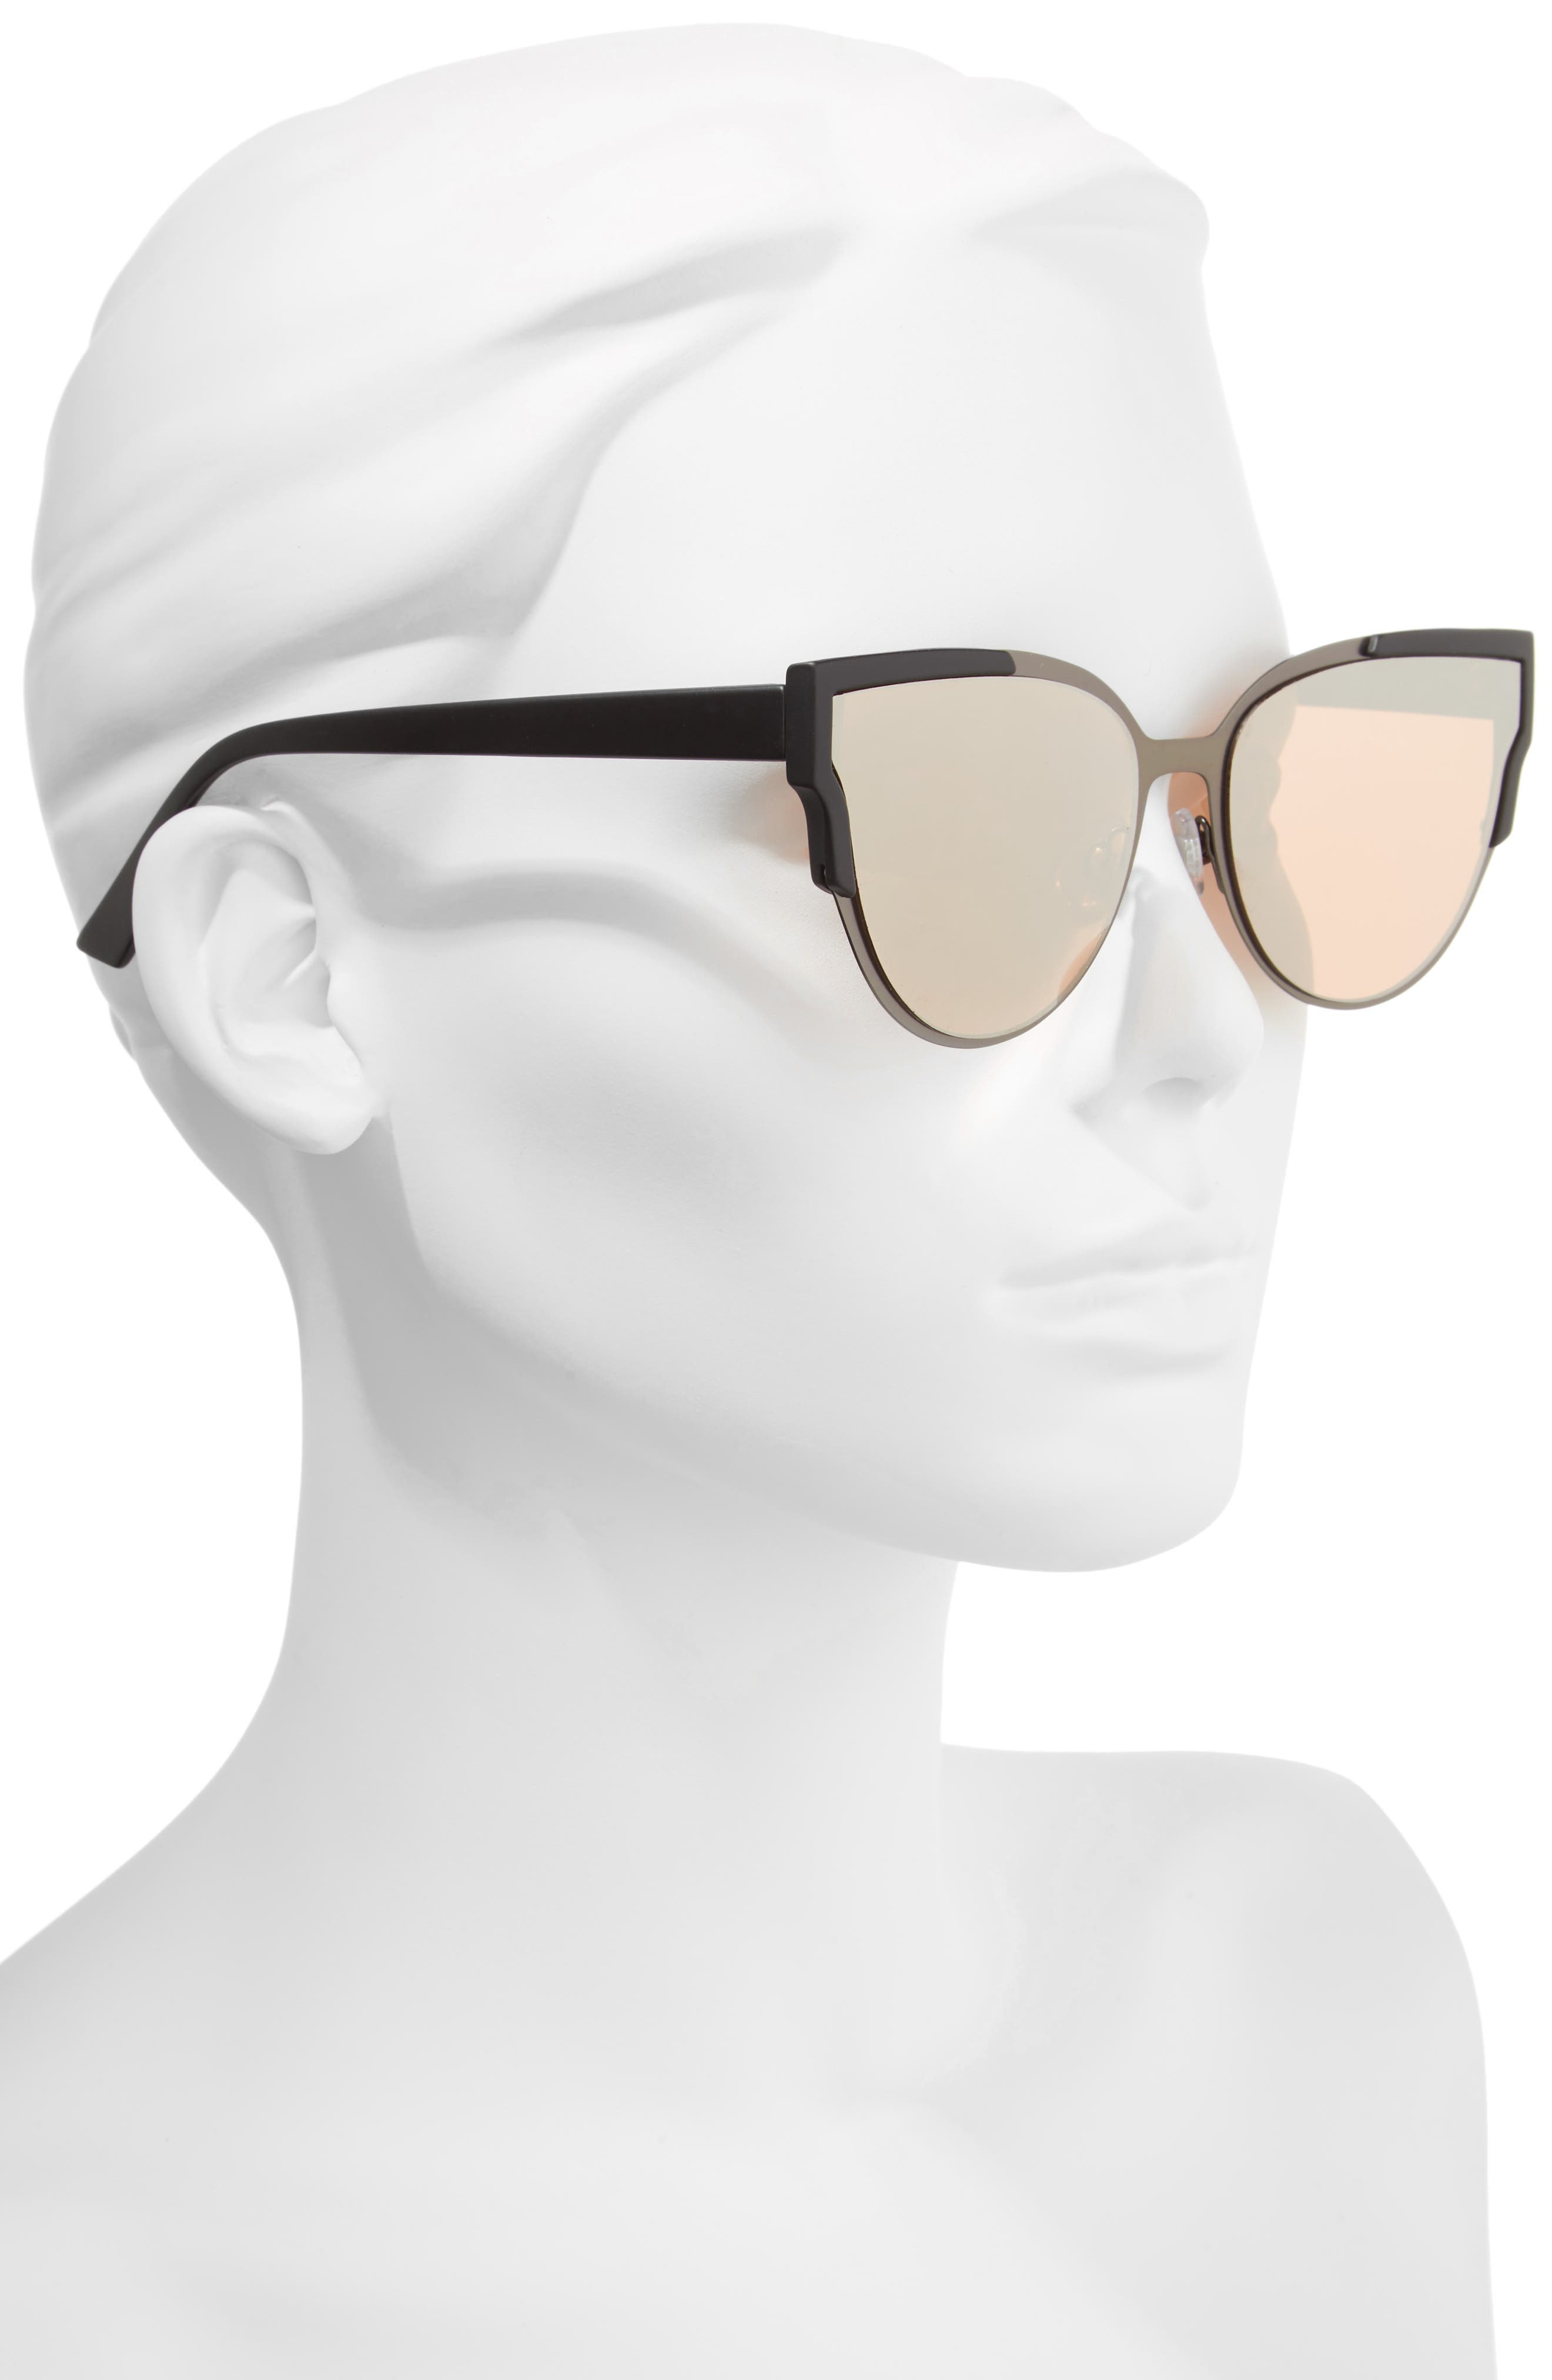 59mm Cat Eye Sunglasses,                             Alternate thumbnail 2, color,                             001